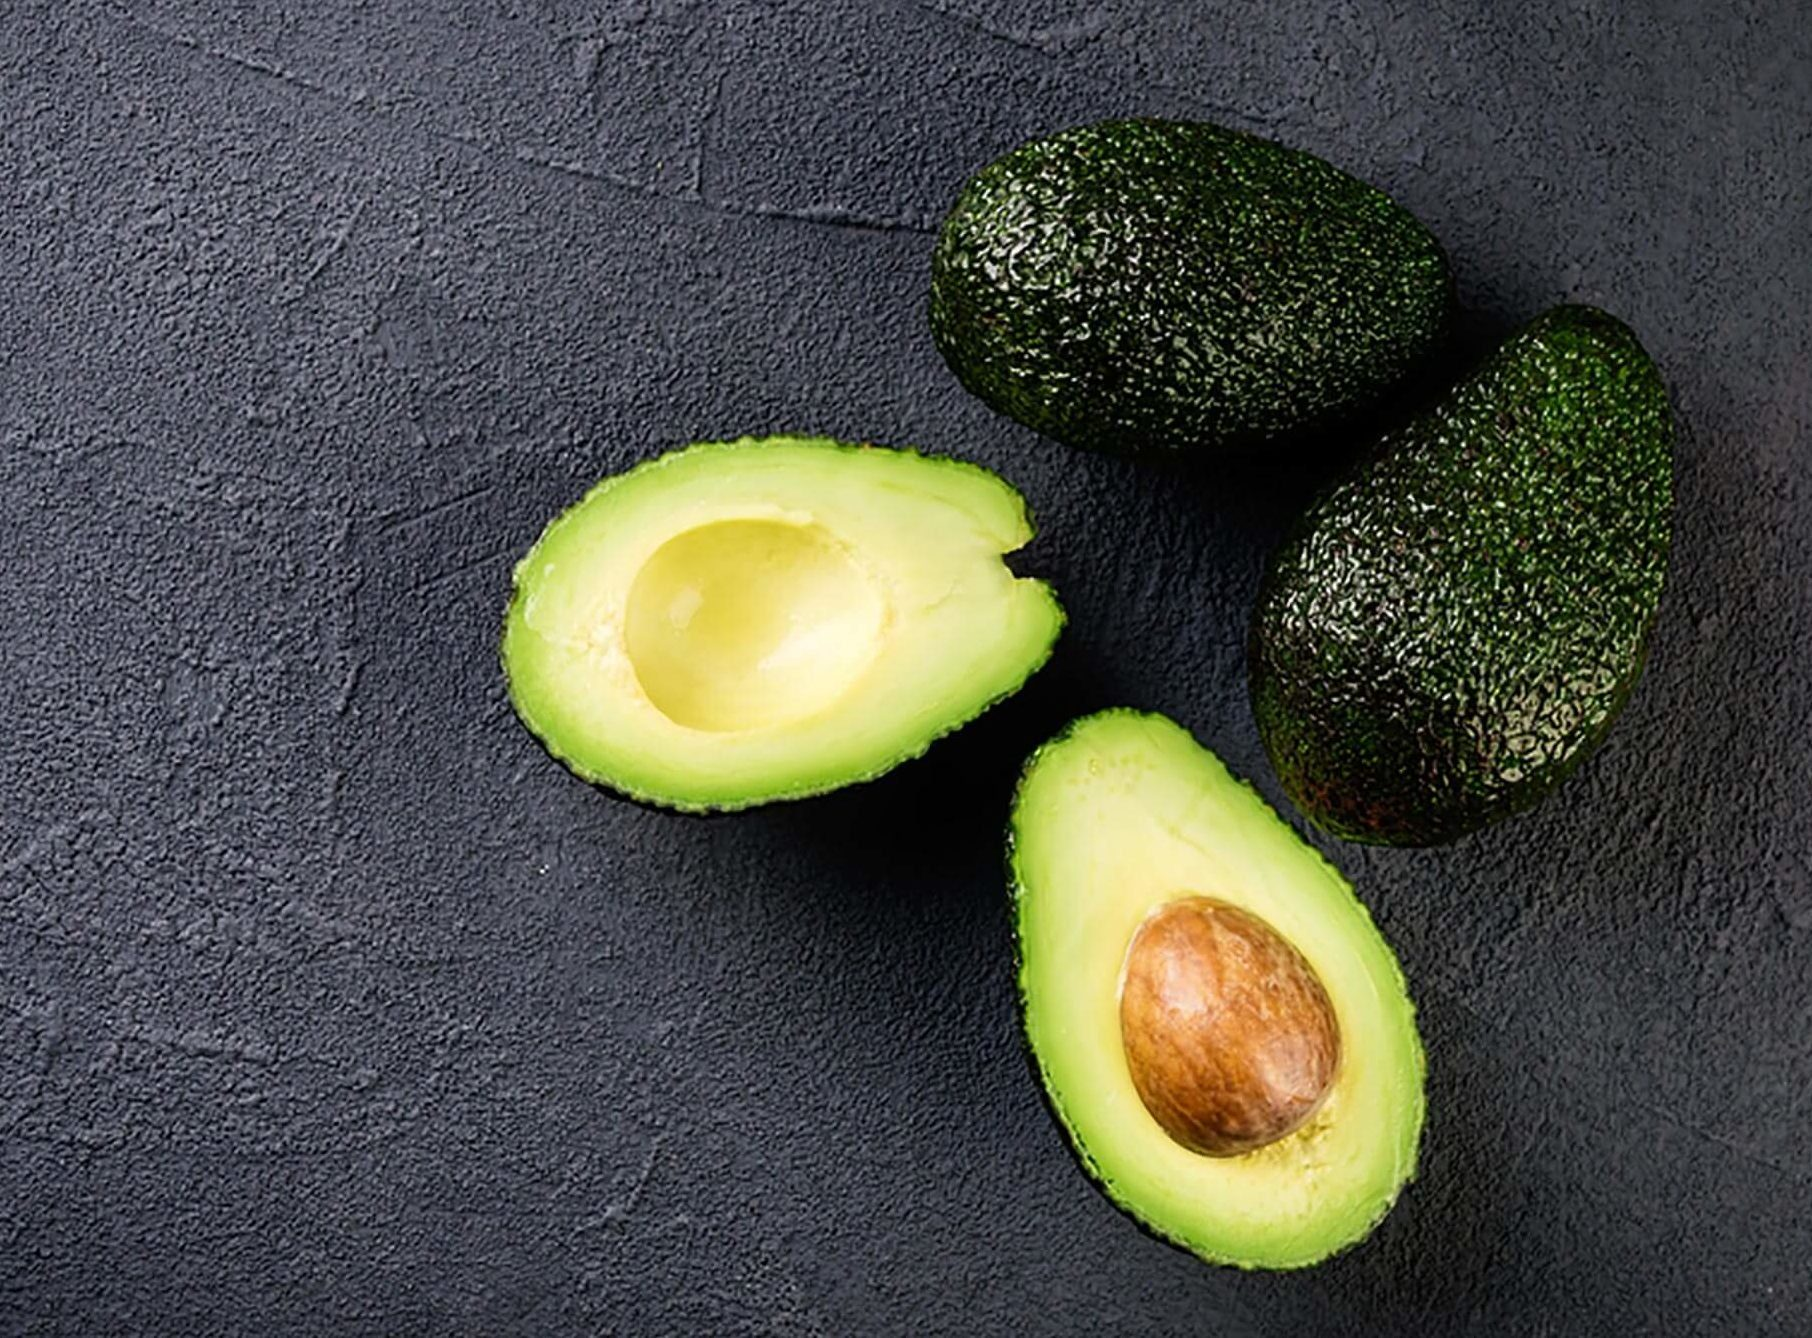 12 Healthiest, High-Fat Foods You Should Be Eating